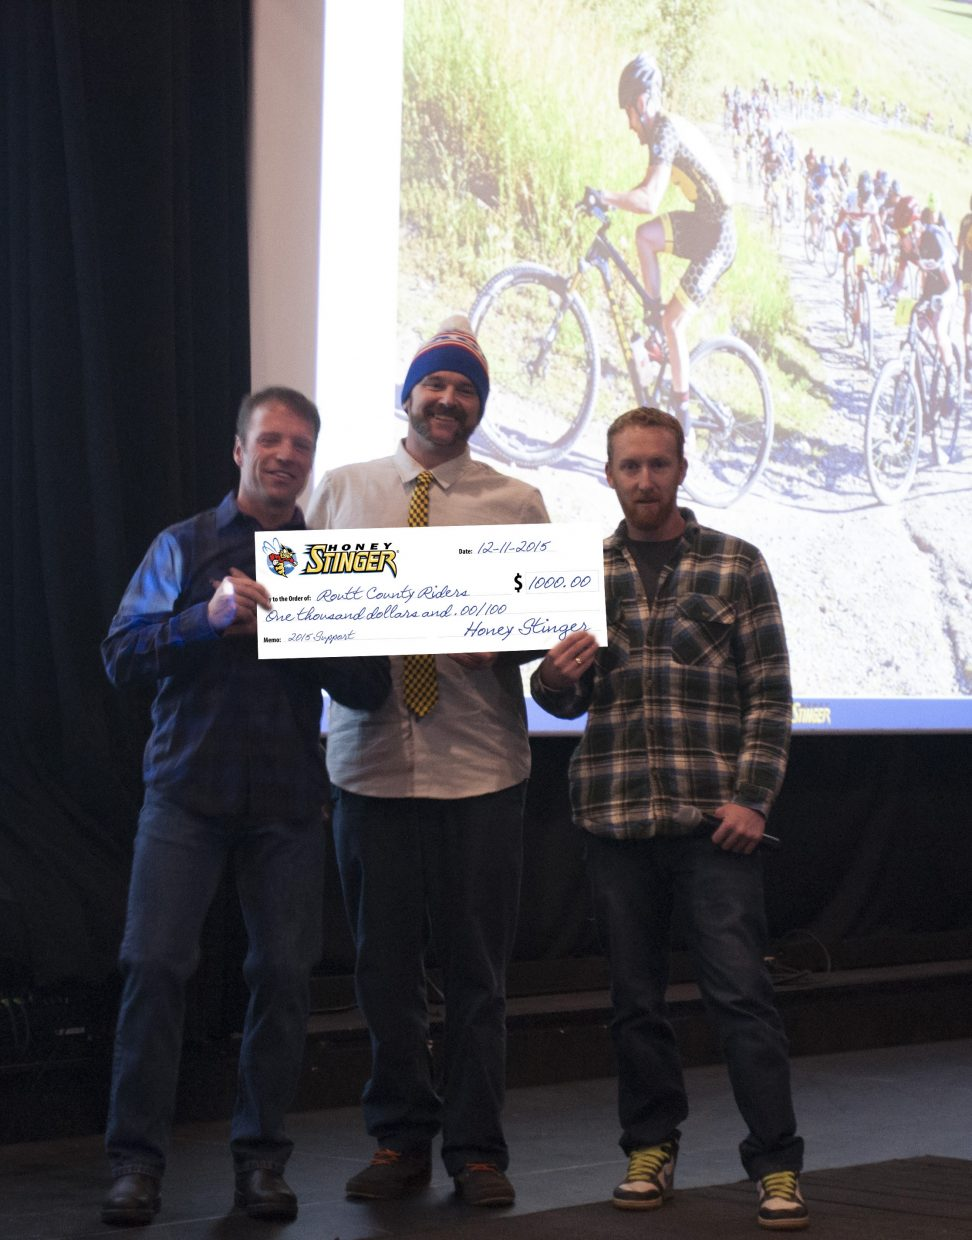 Big Agnes and Honey Stinger employees and Routt County Riders board members Rob Peterson and Nate Bird present a check for $1,000 to Alan Perkins, Routt County Riders board president. The money was raised through the Steamboat Stinger race.